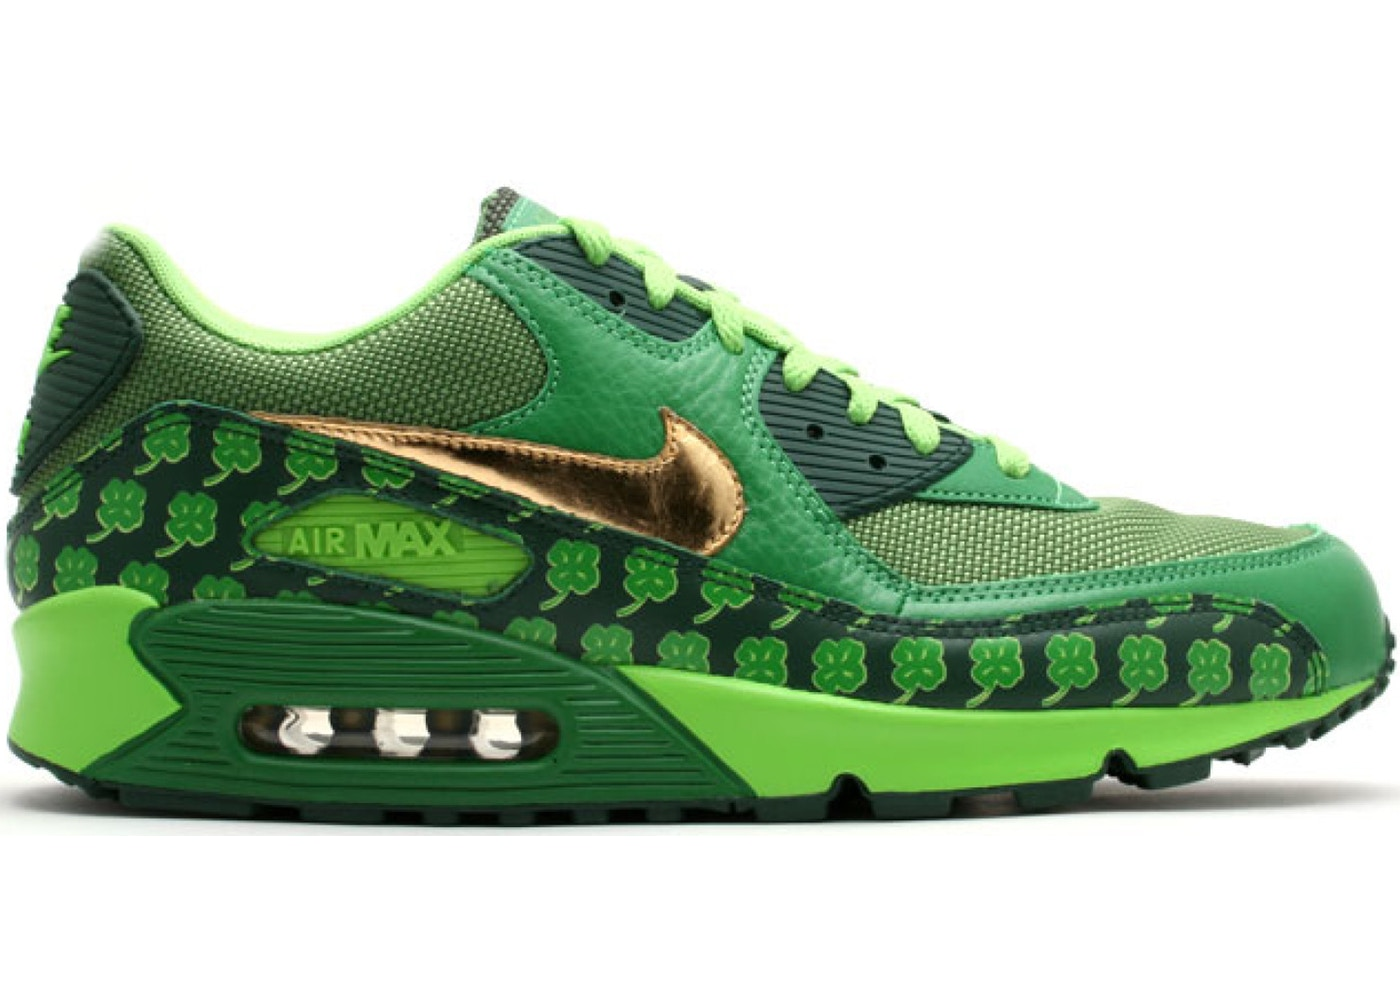 539ad27ecc Sell. or Ask. Size: 12. View All Bids. Air Max 90 St. Patty's Day ...